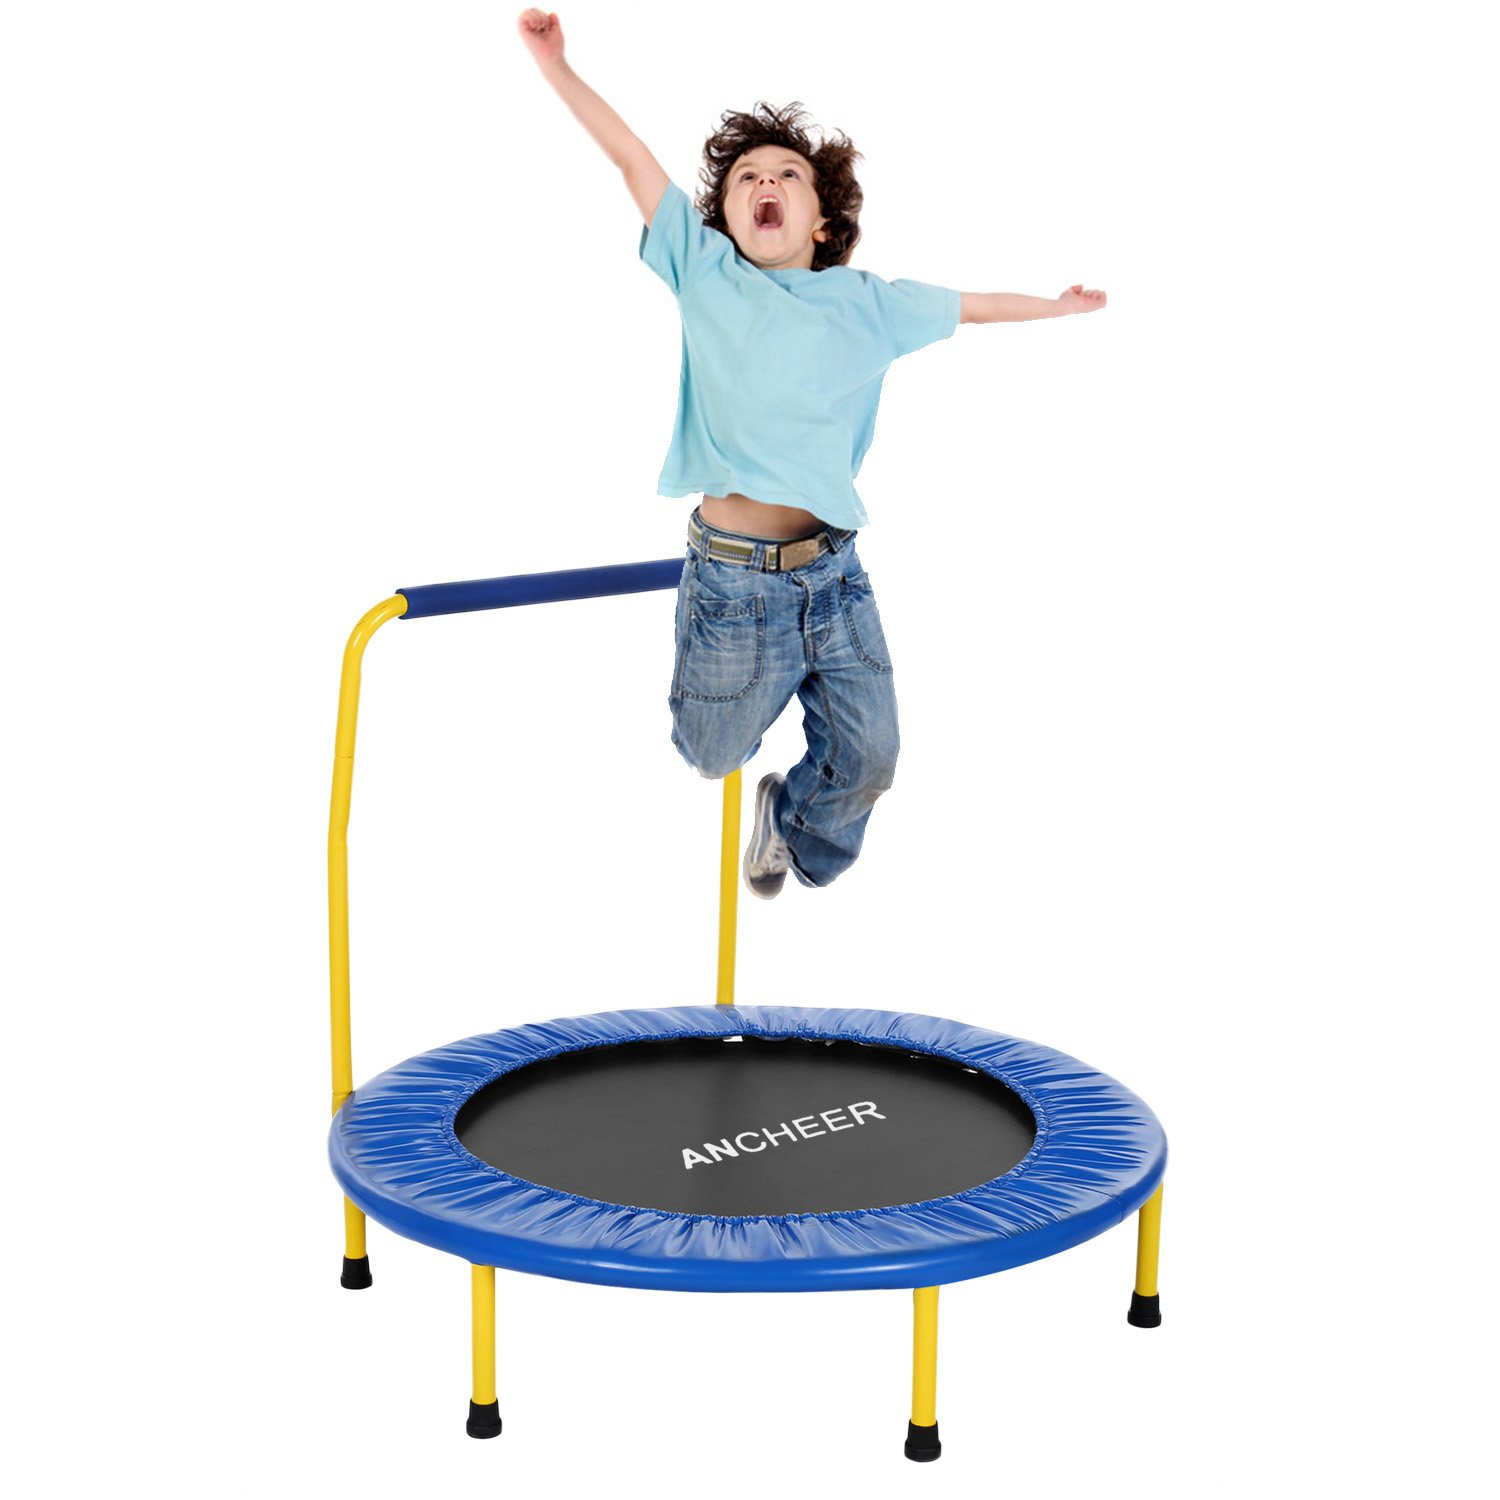 ANCHEER Mini Rebounder Trampoline with Handrail, Safe Trampoline for Kids (Blue)